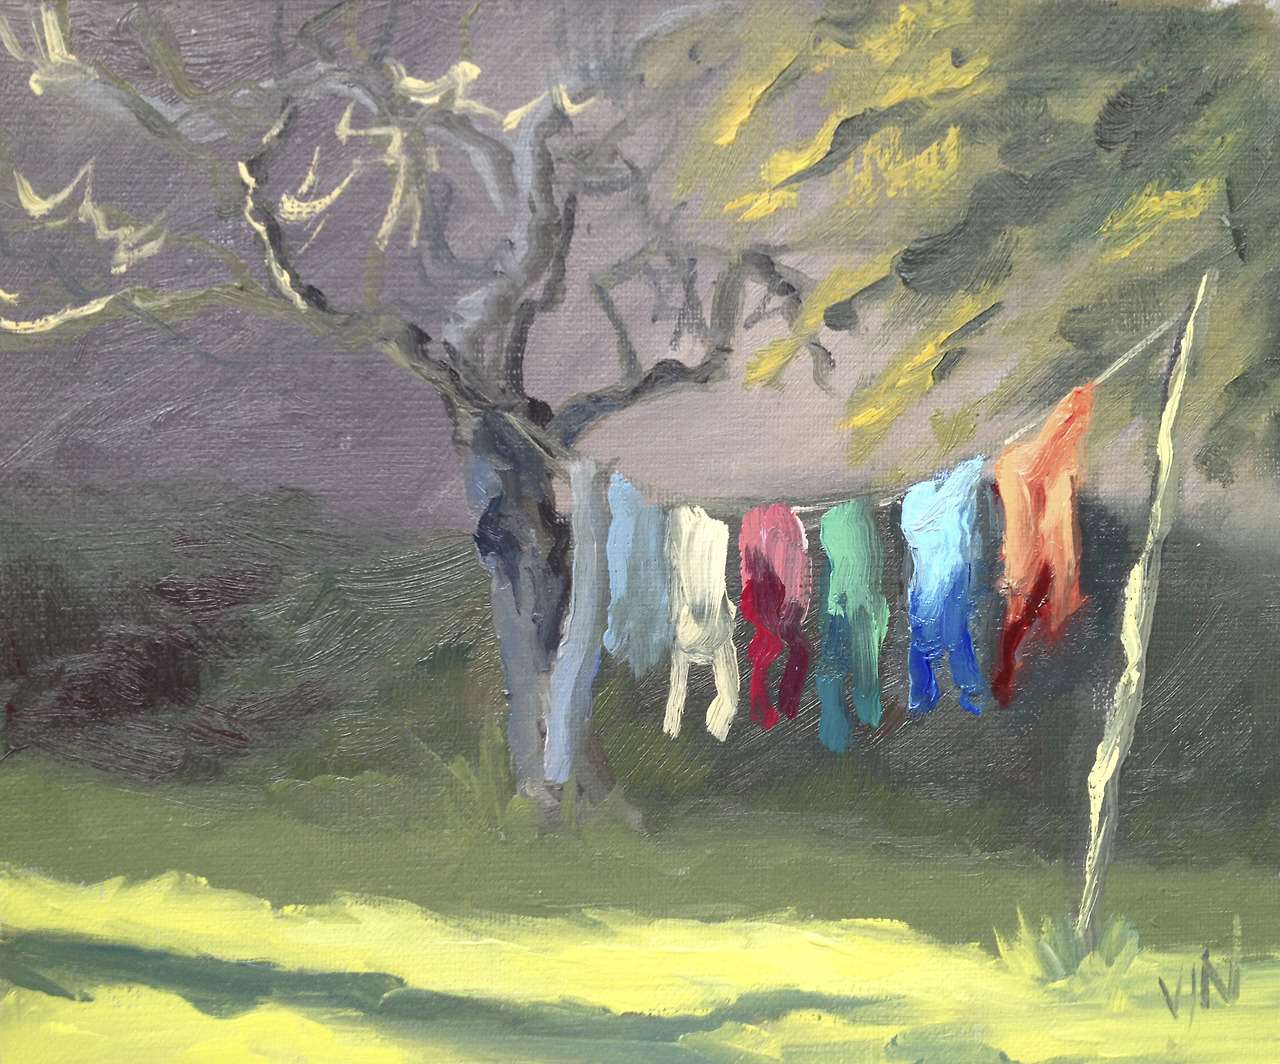 A Plein Air oil study of sunlight catching the laundry on the line. I enjoyed the challenge of painting it quickly before the light changed.